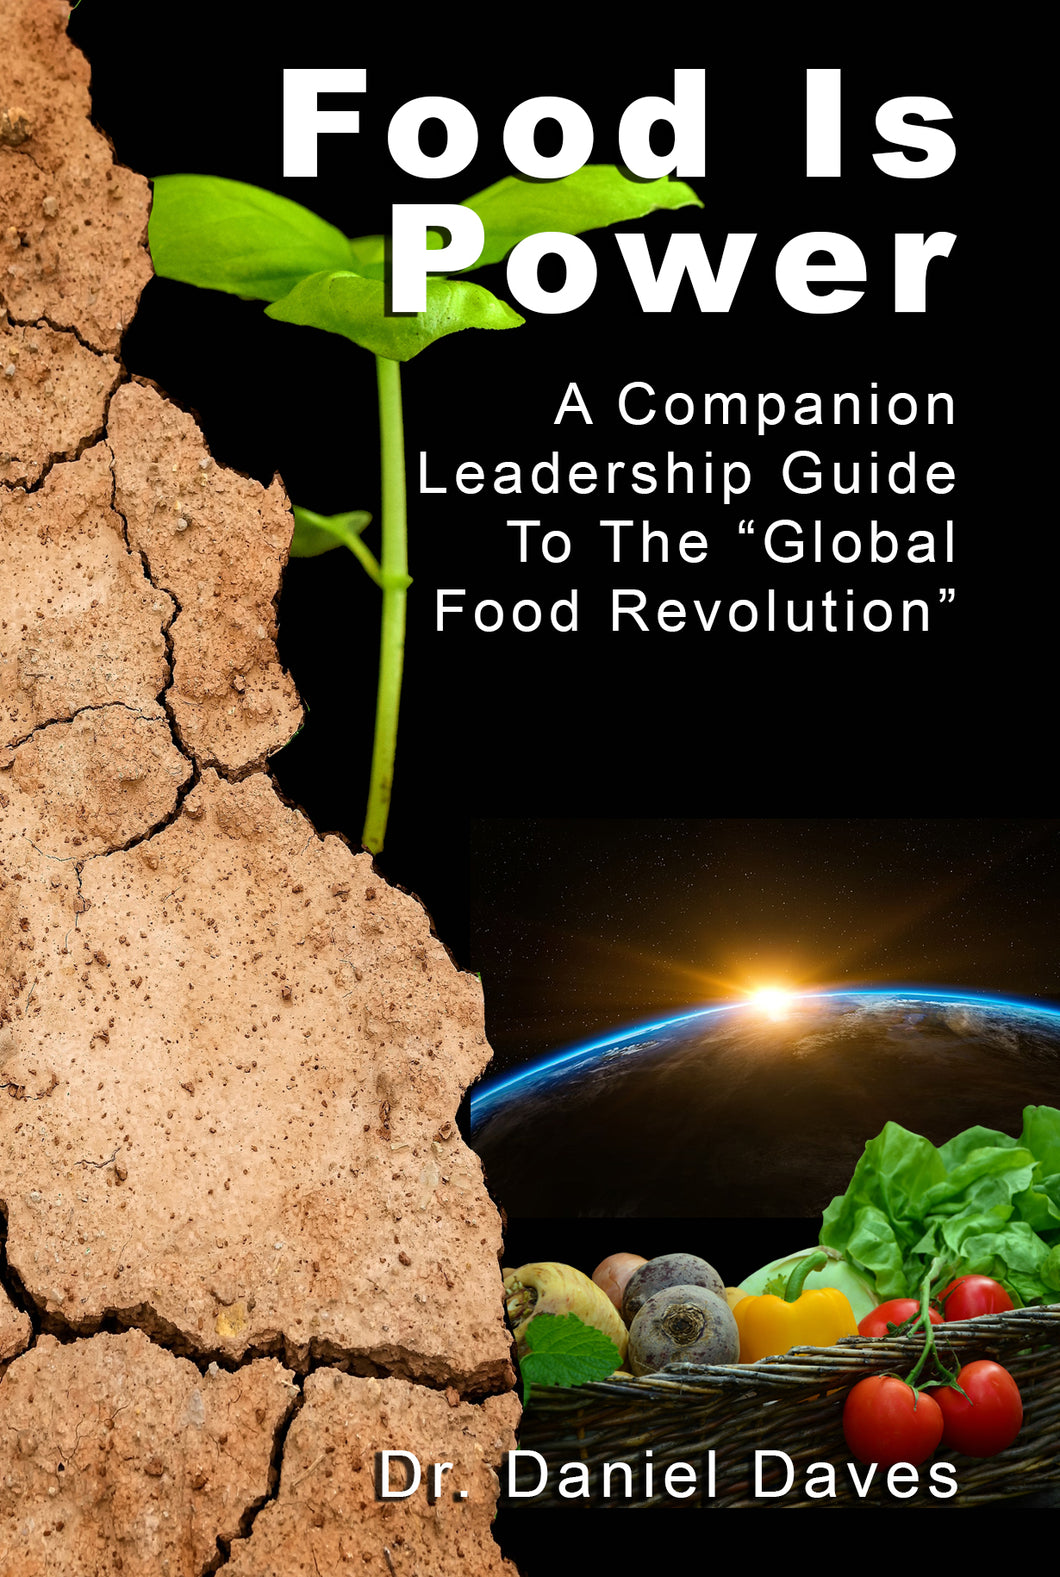 Food Is Power paperback leadership guide - English